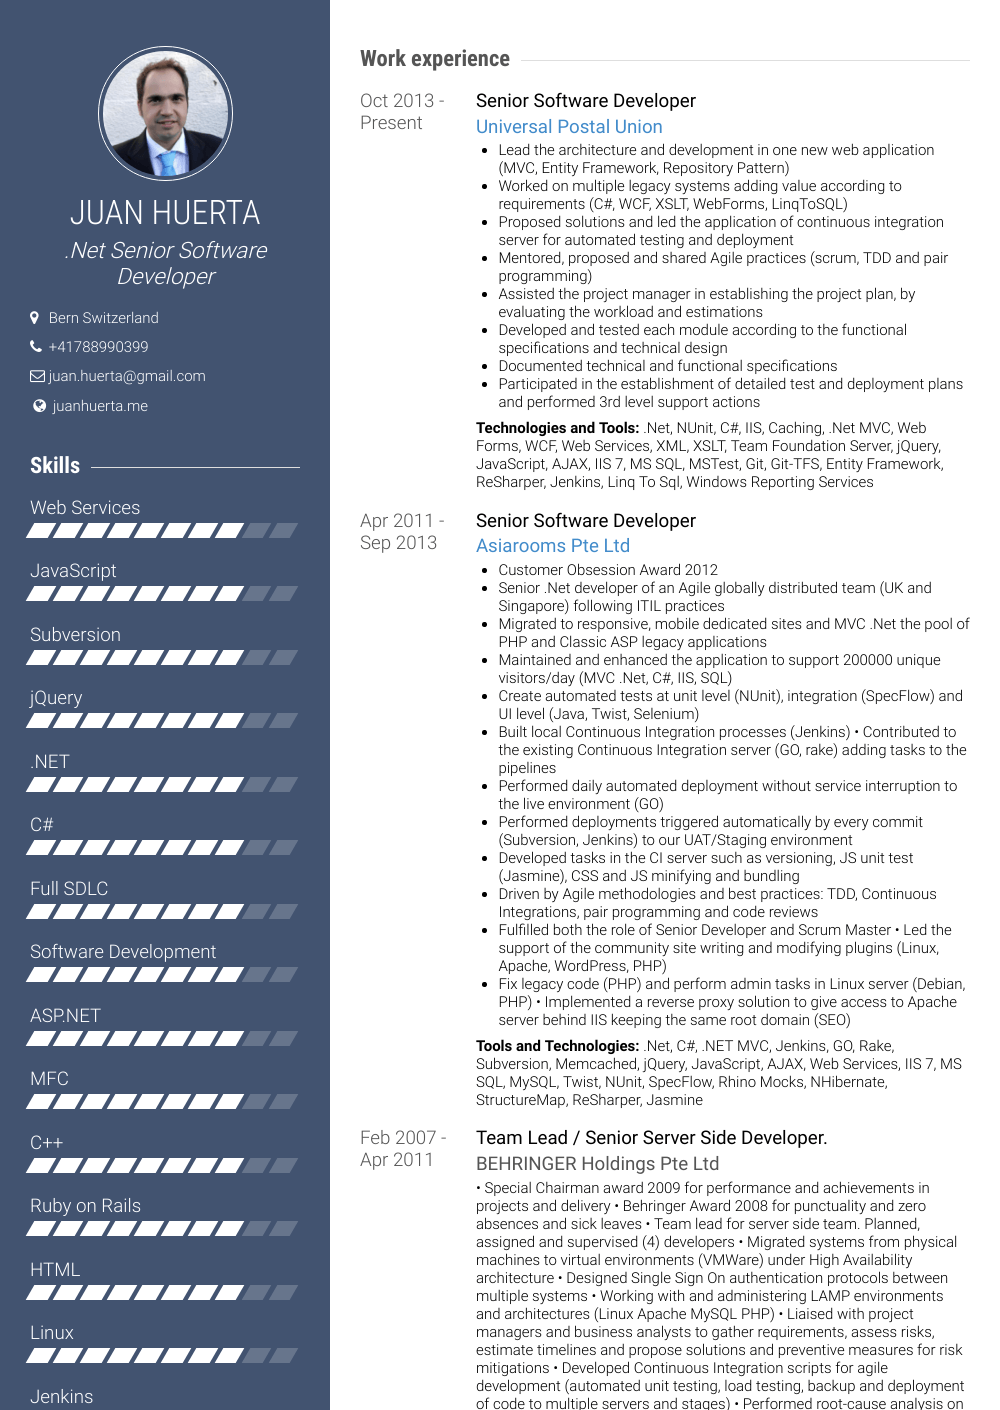 Senior Software Developer - Resume Samples & Templates | VisualCV